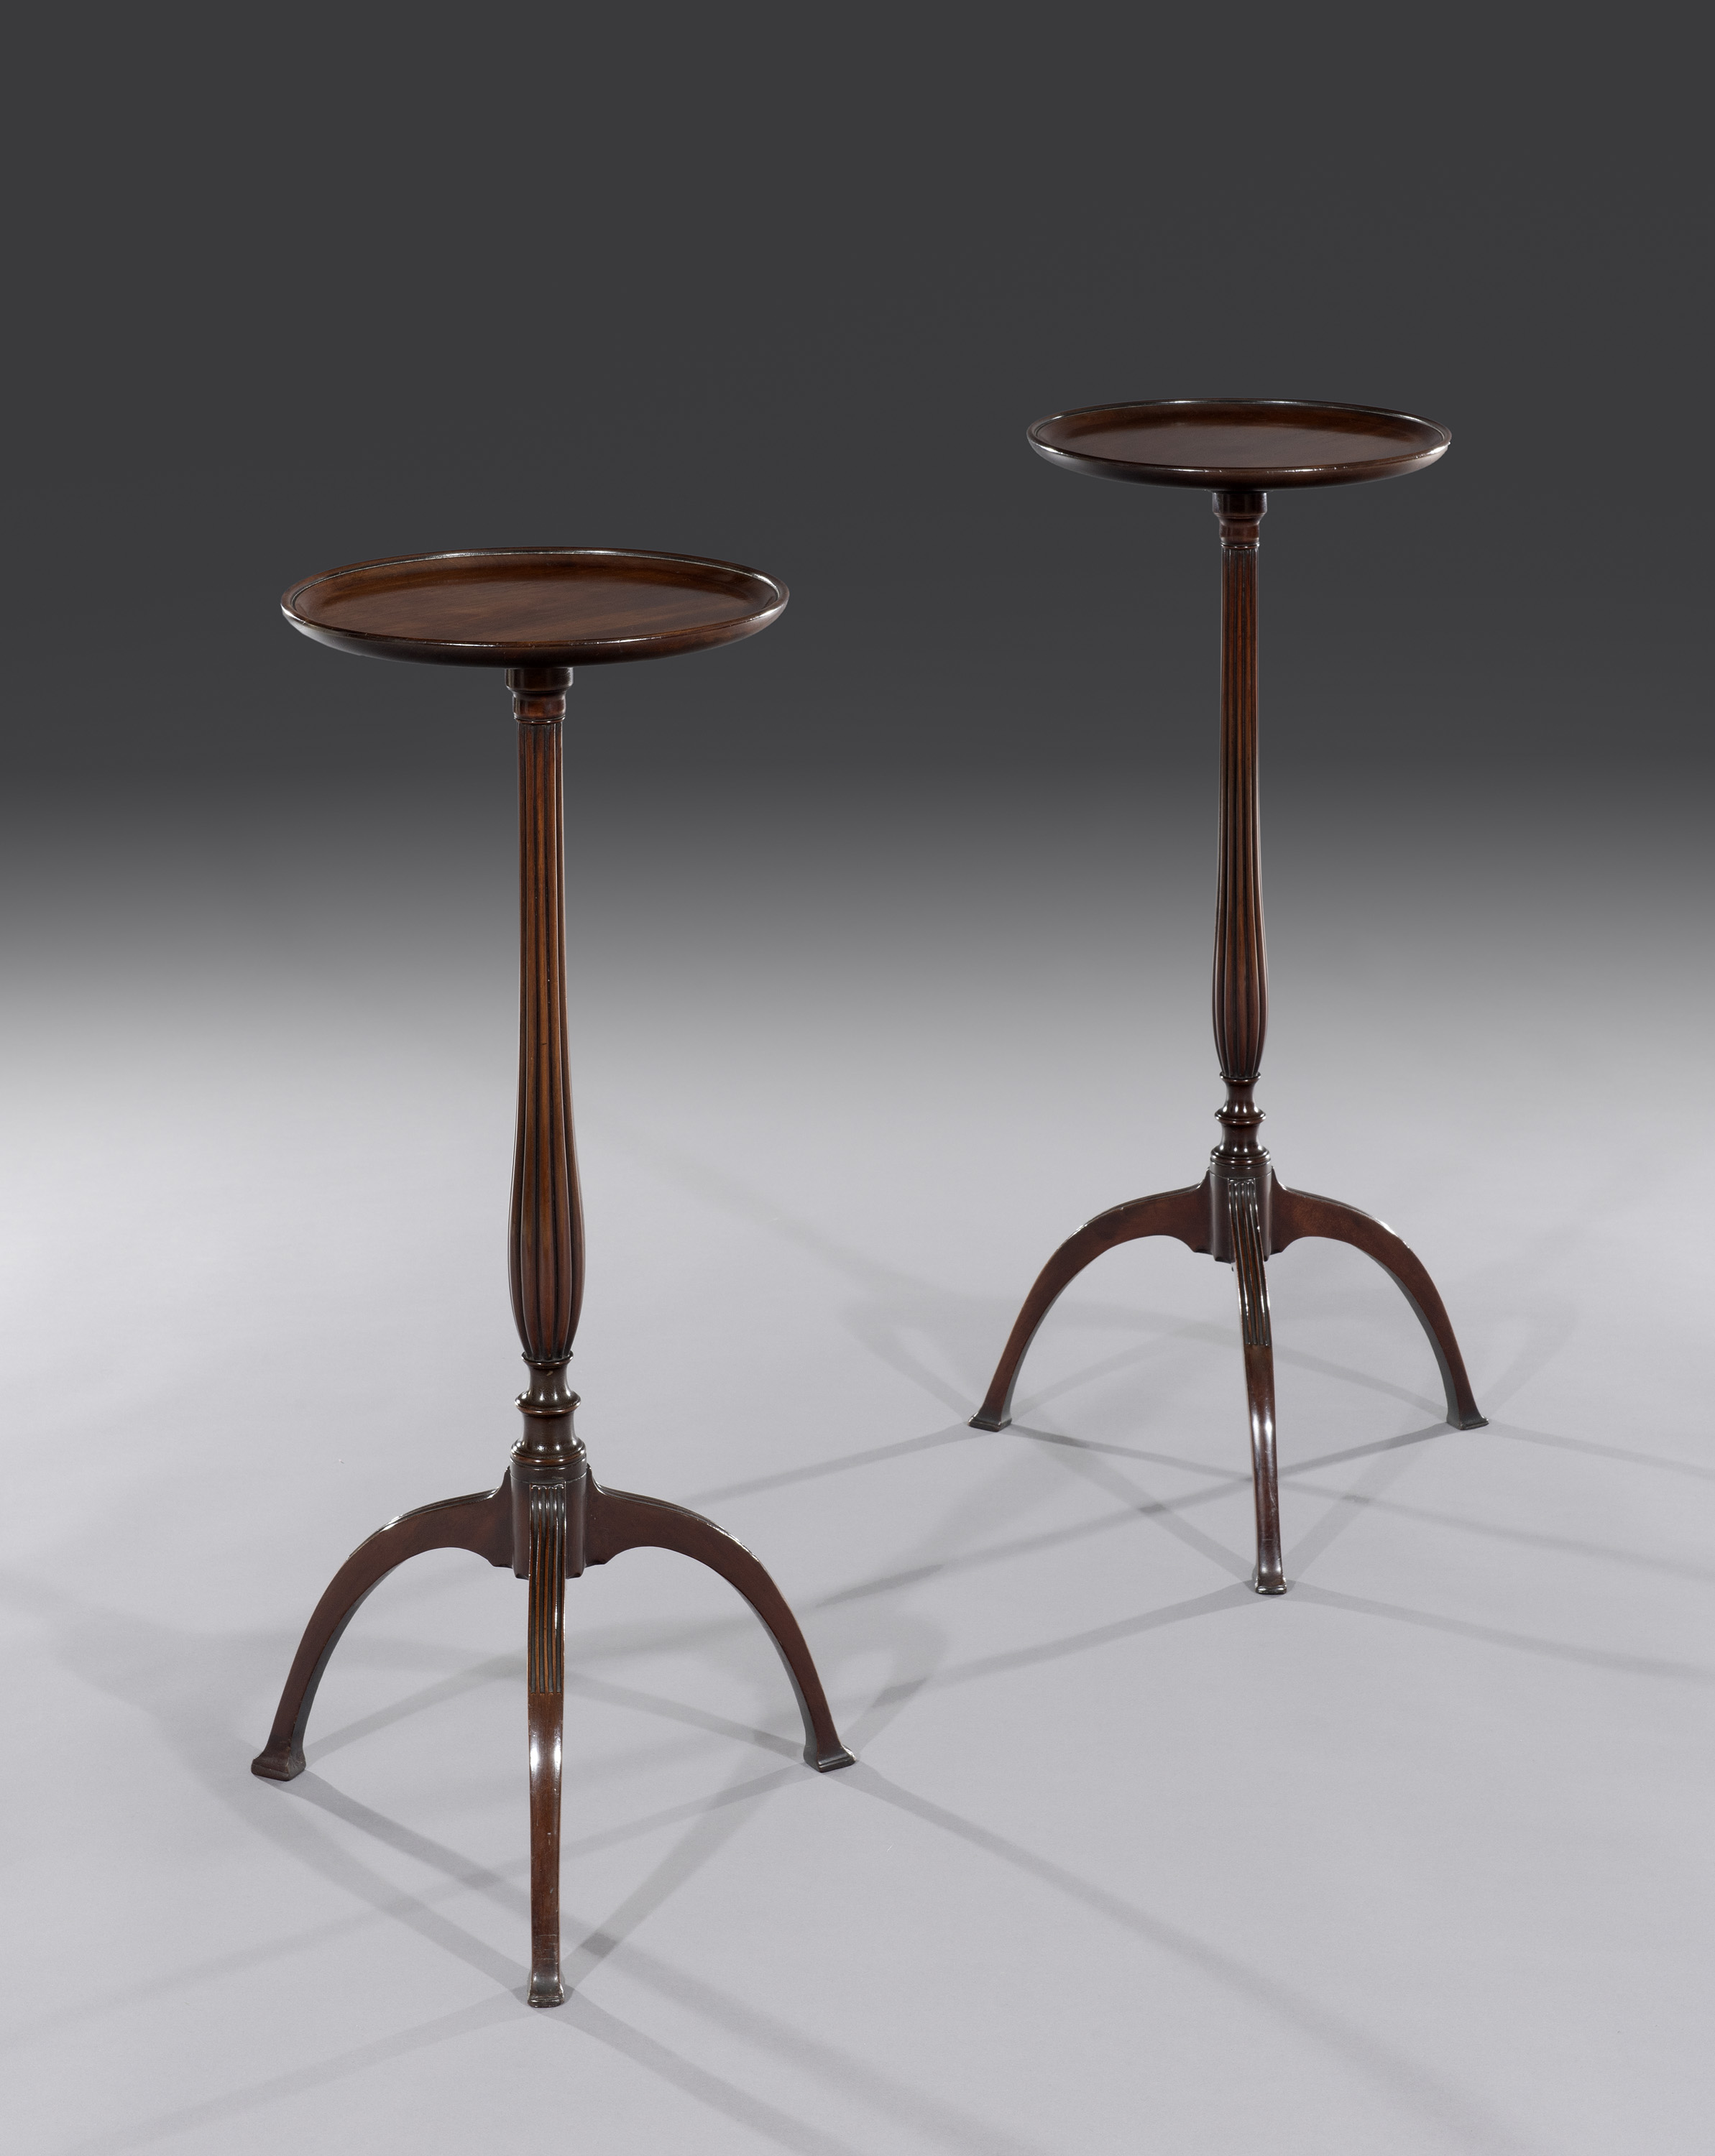 Ottery Antique Furniture Pair Of Wine Or Lamp Tables